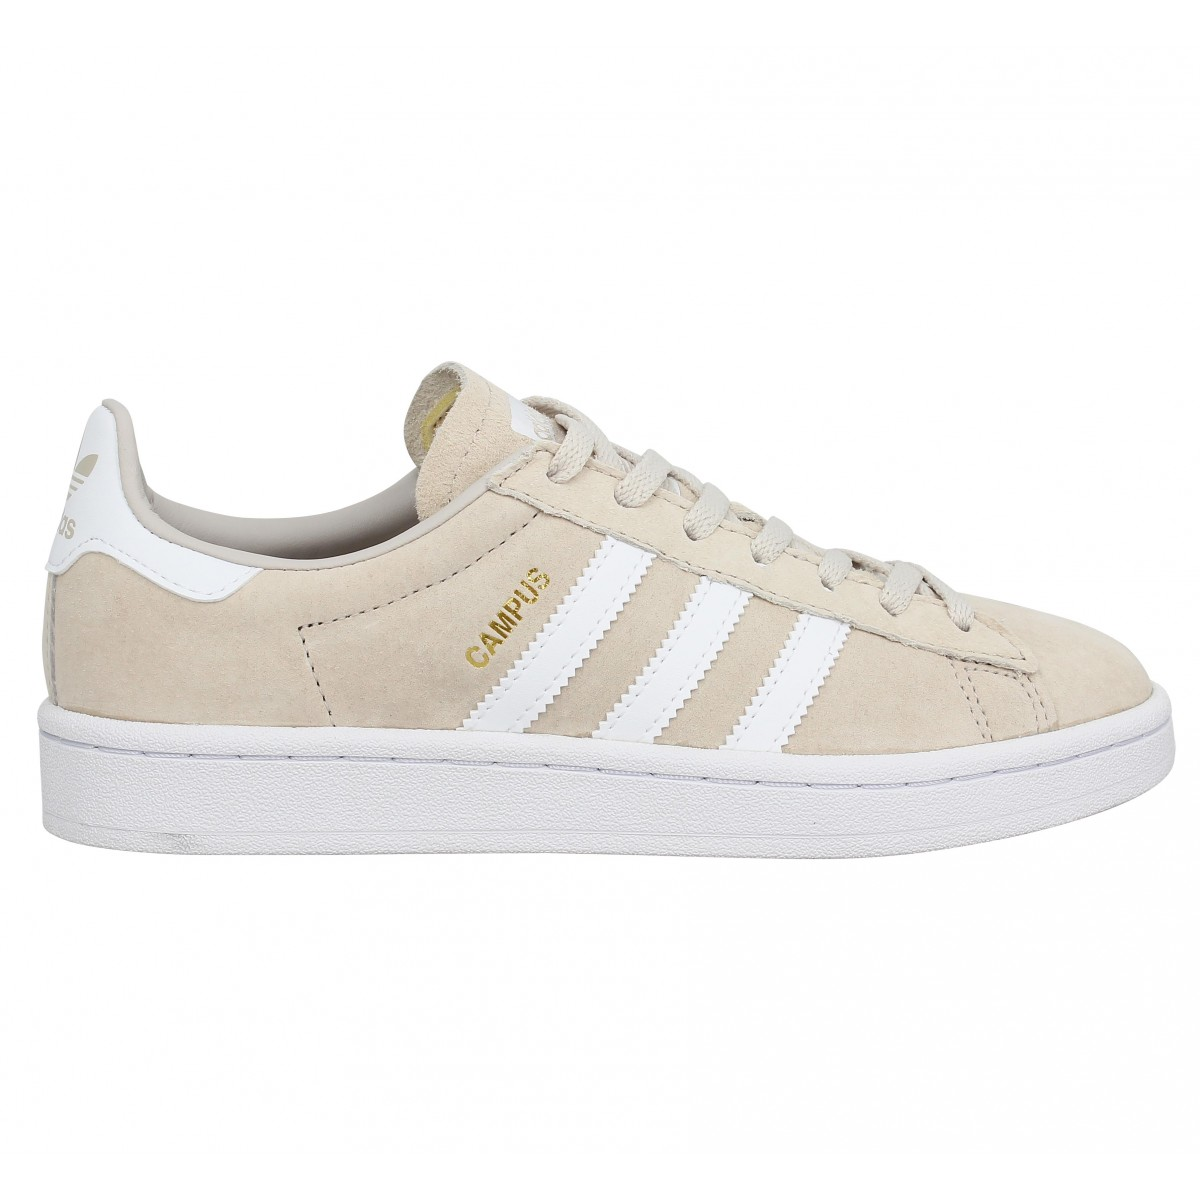 pick up the cheapest factory outlets chaussures adidas campus femme